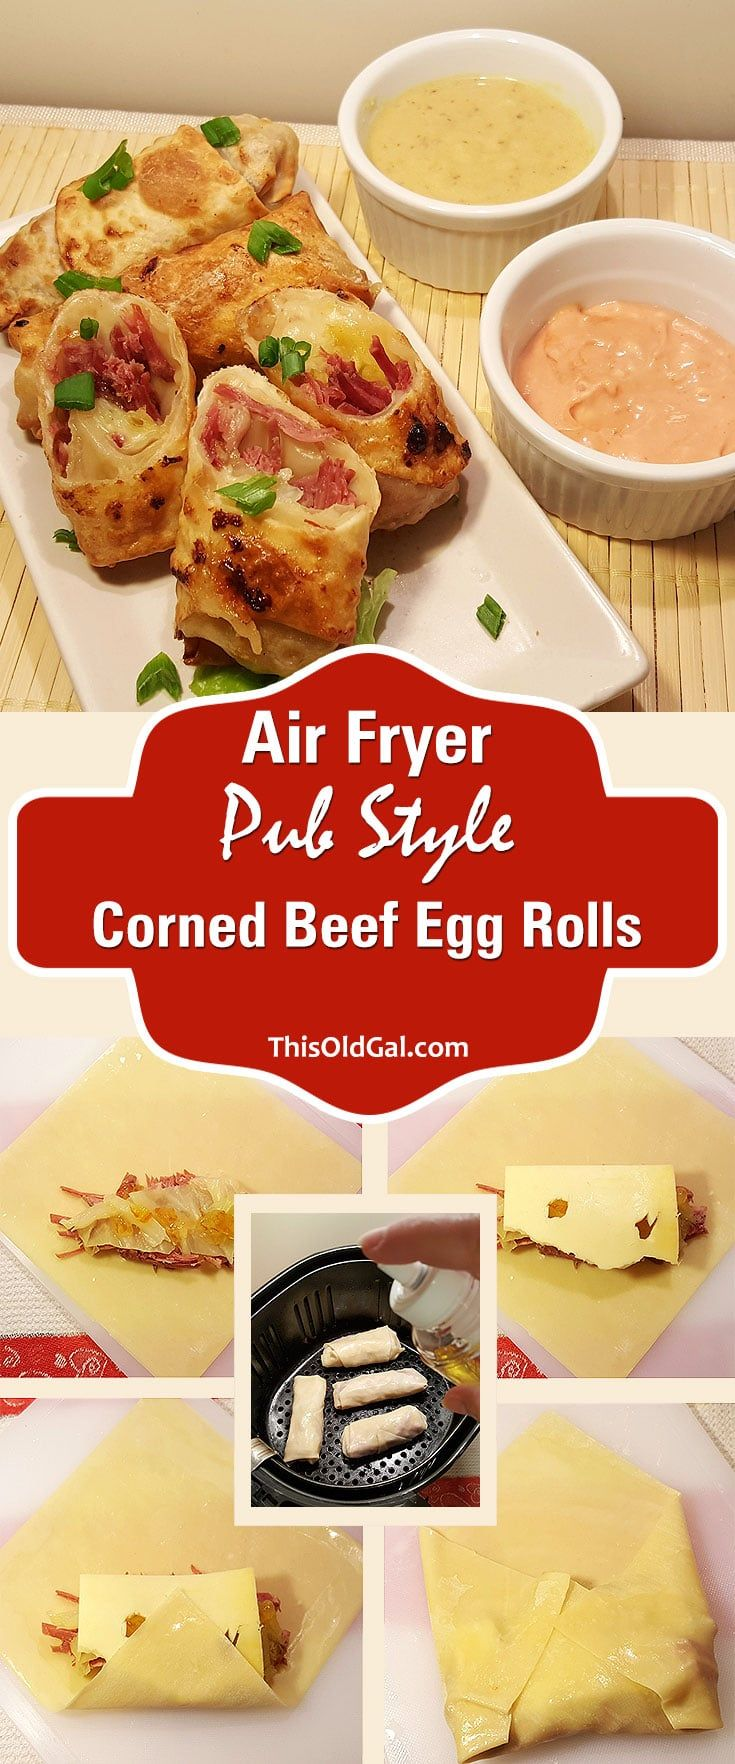 Air Fryer Pub Style Corned Beef Egg Rolls via @thisoldgalcooks